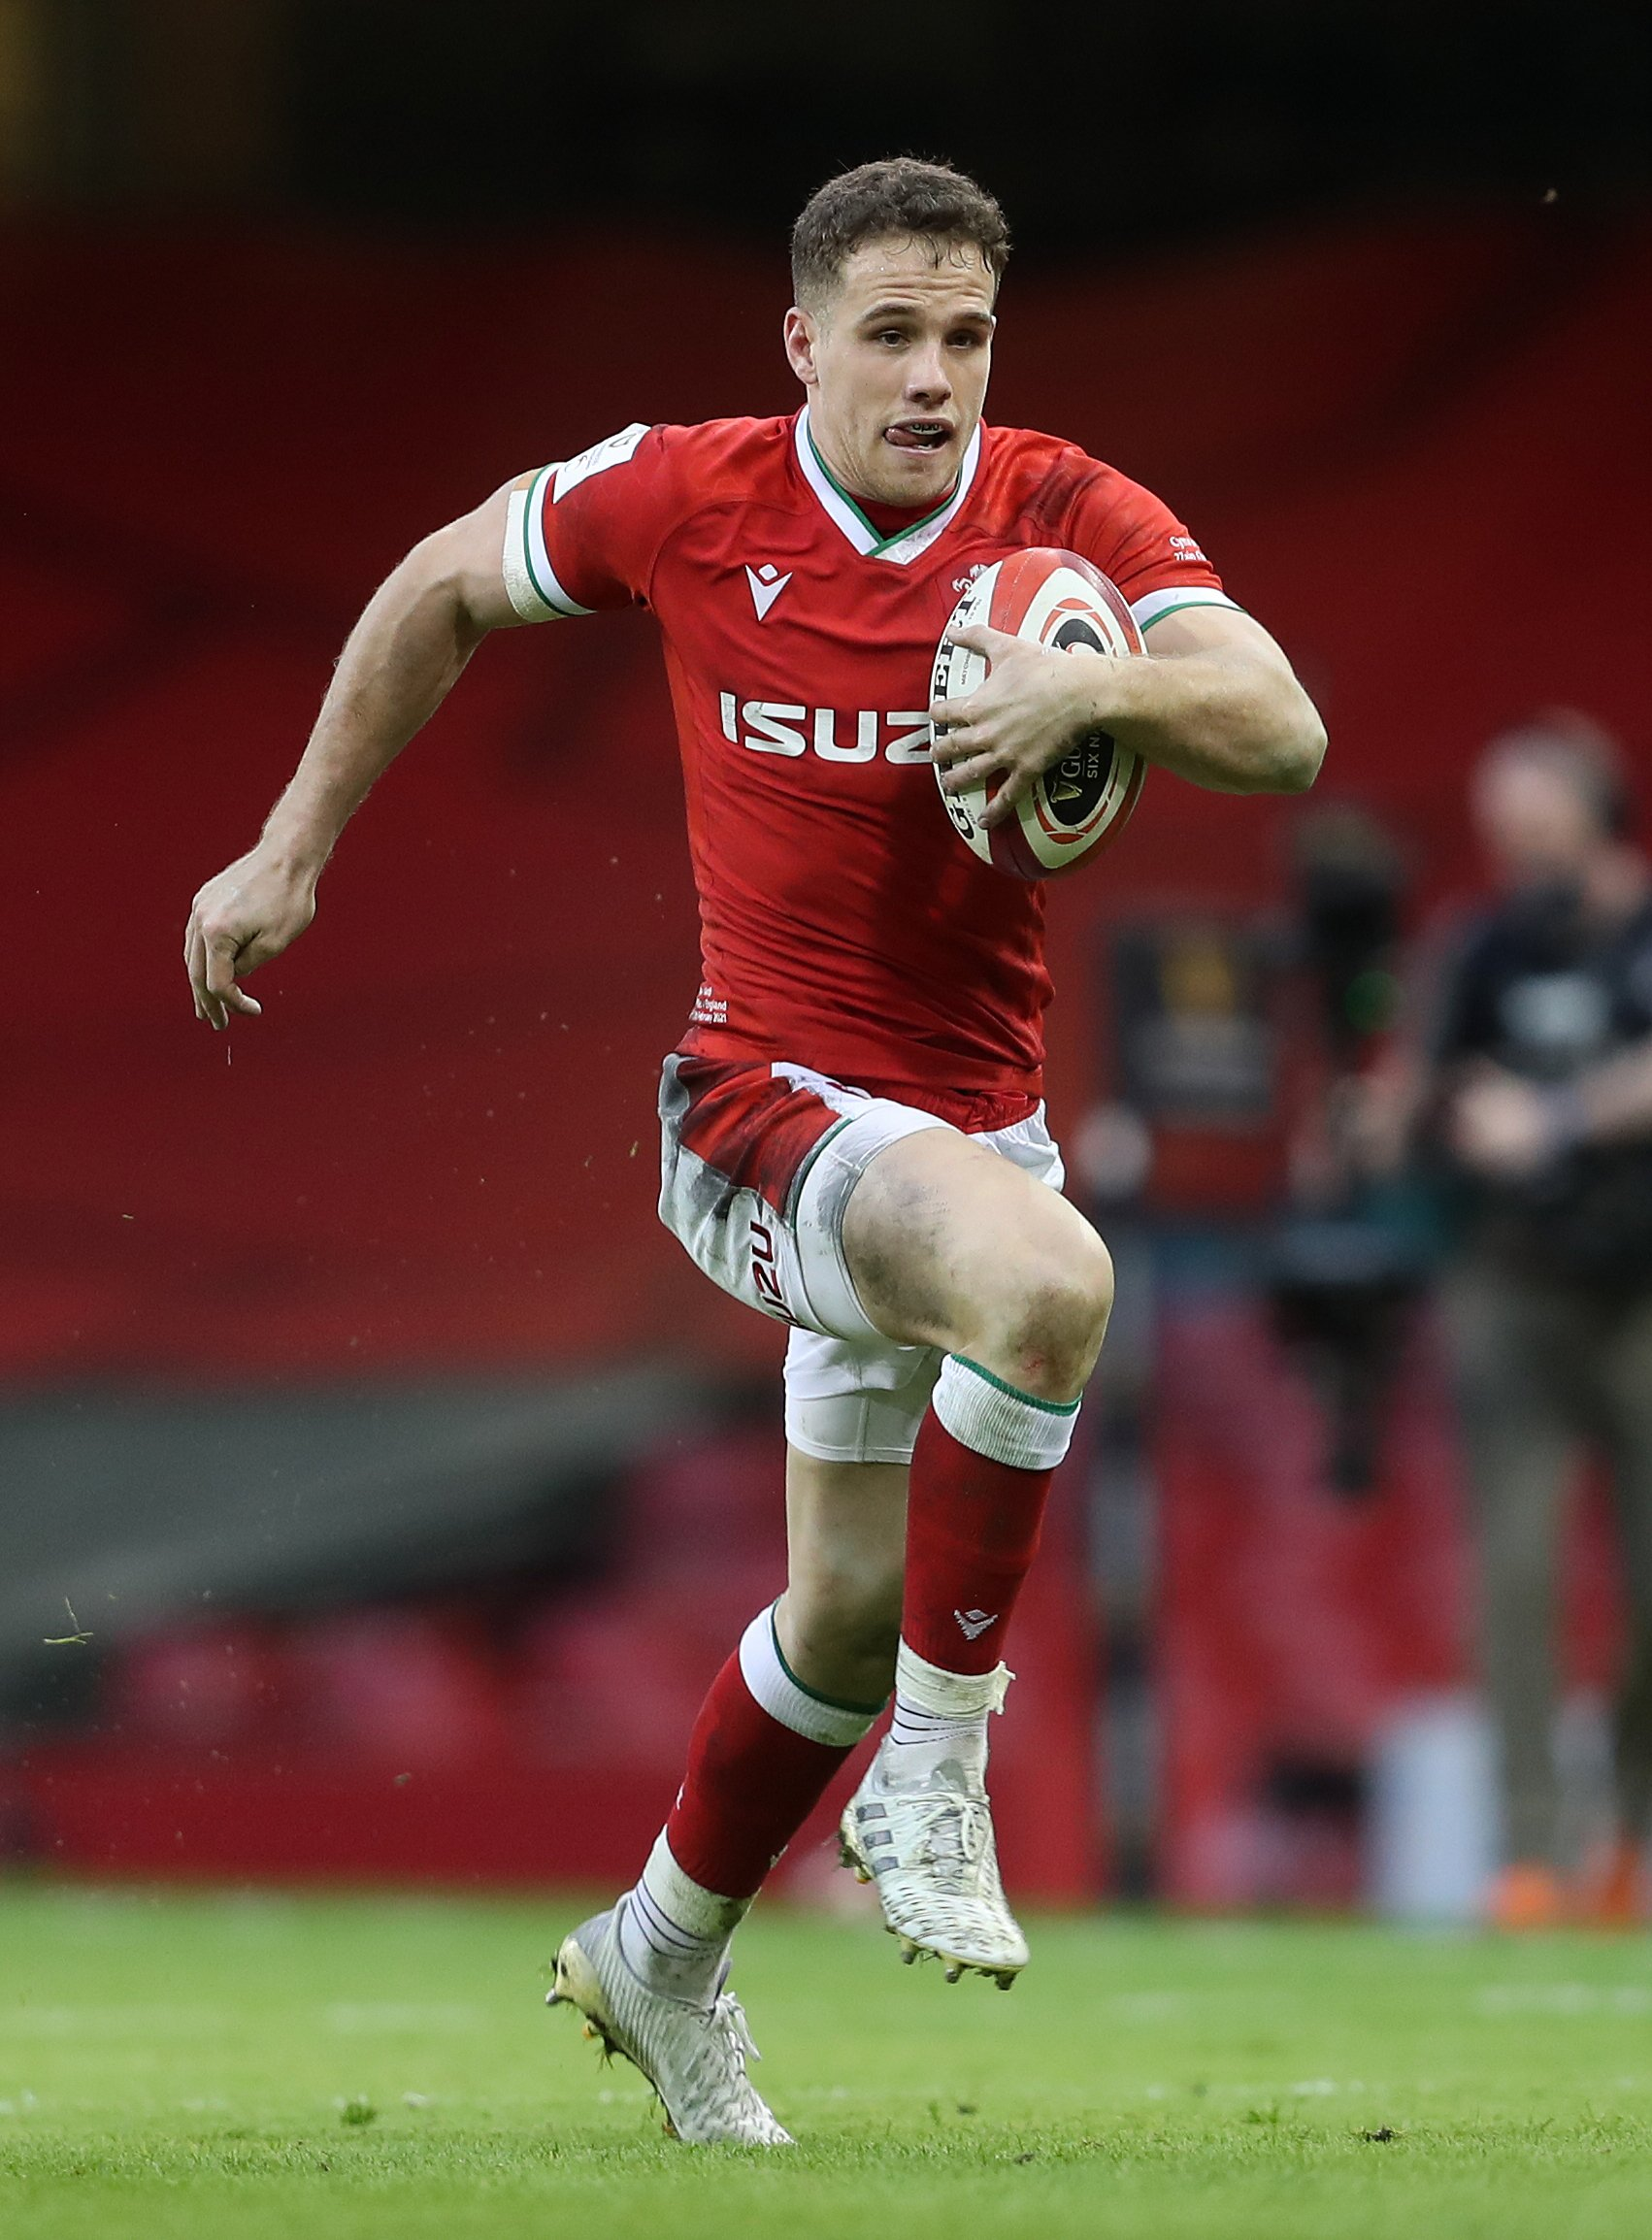 Wales scrum-half Kieran Hardy ruled out for the rest of Six Nations campaign